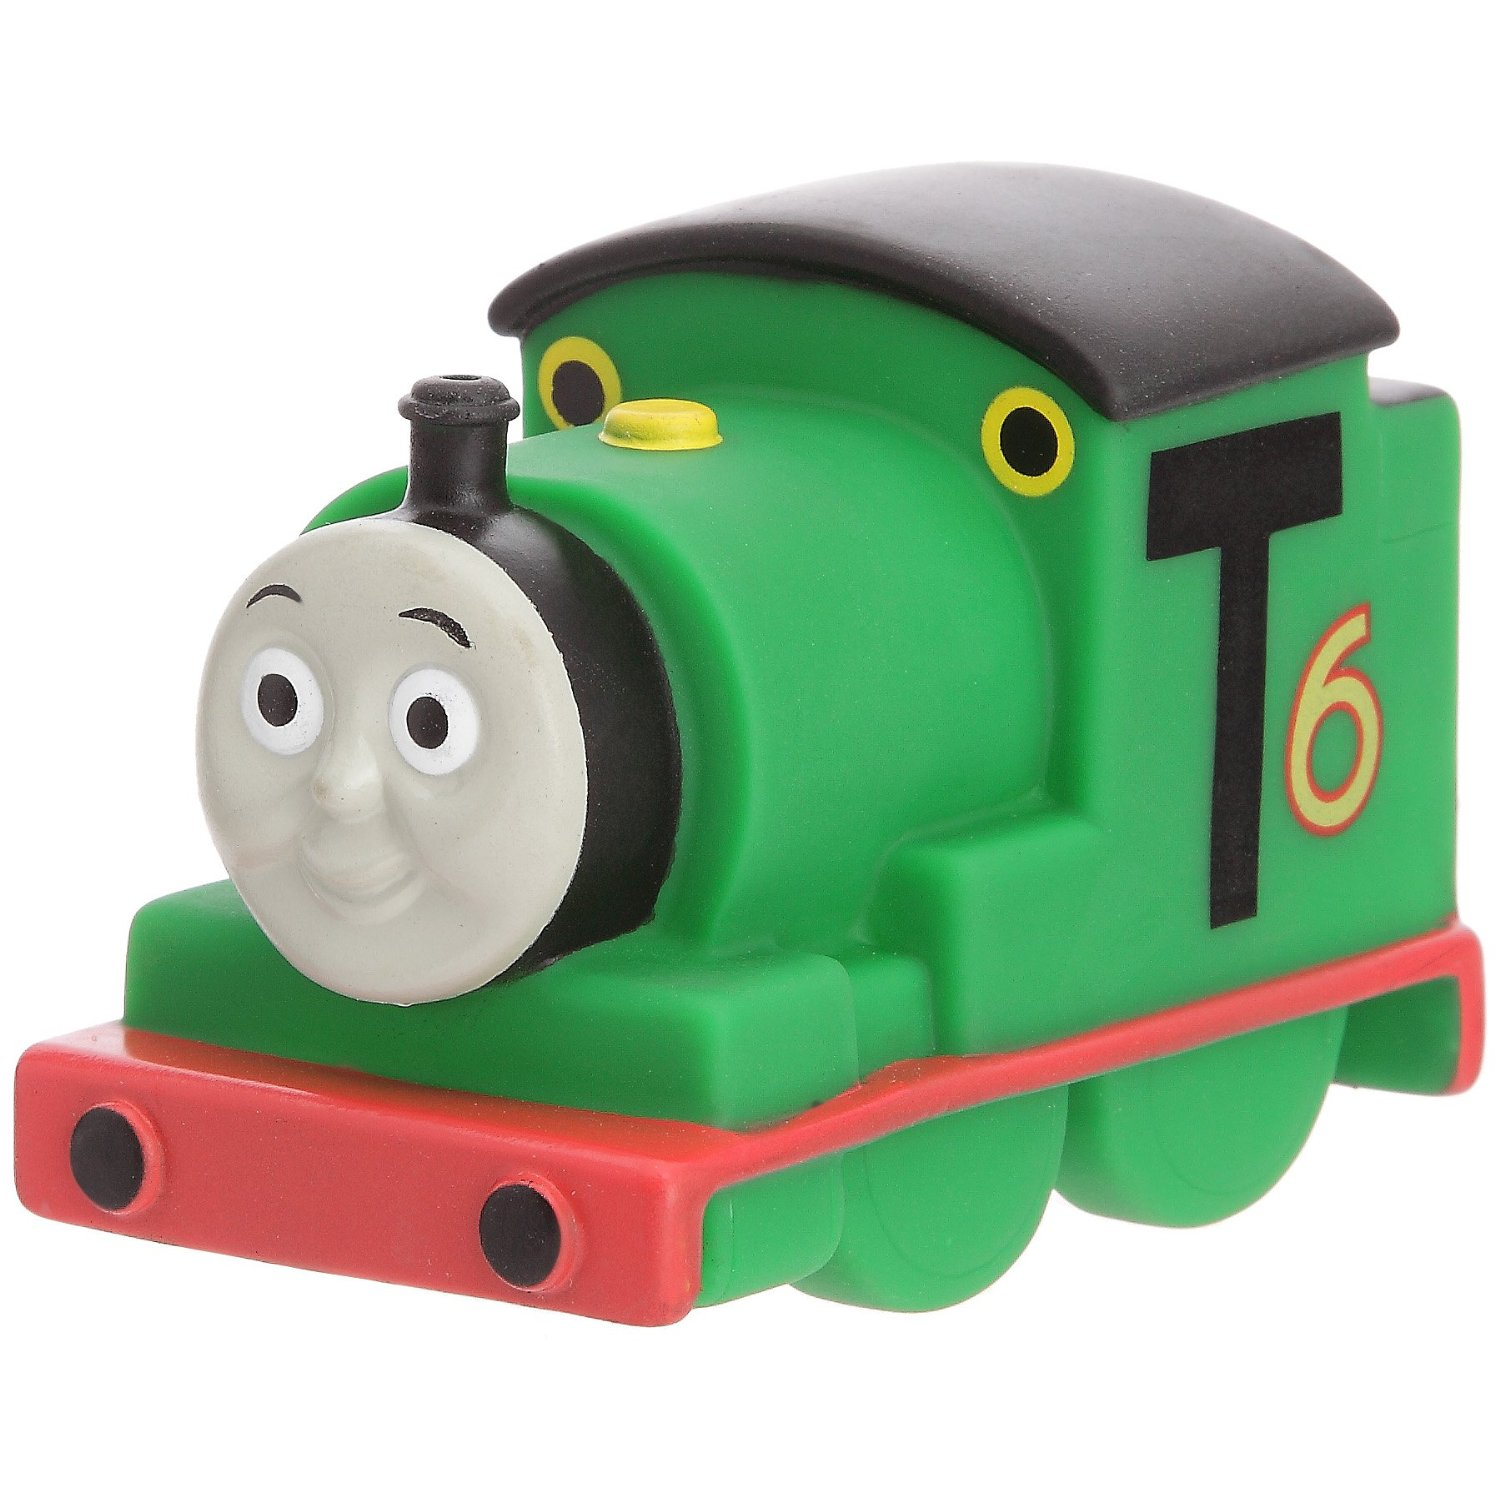 Bath Toys/Gallery | Thomas the Tank Engine Wikia | FANDOM powered by ...